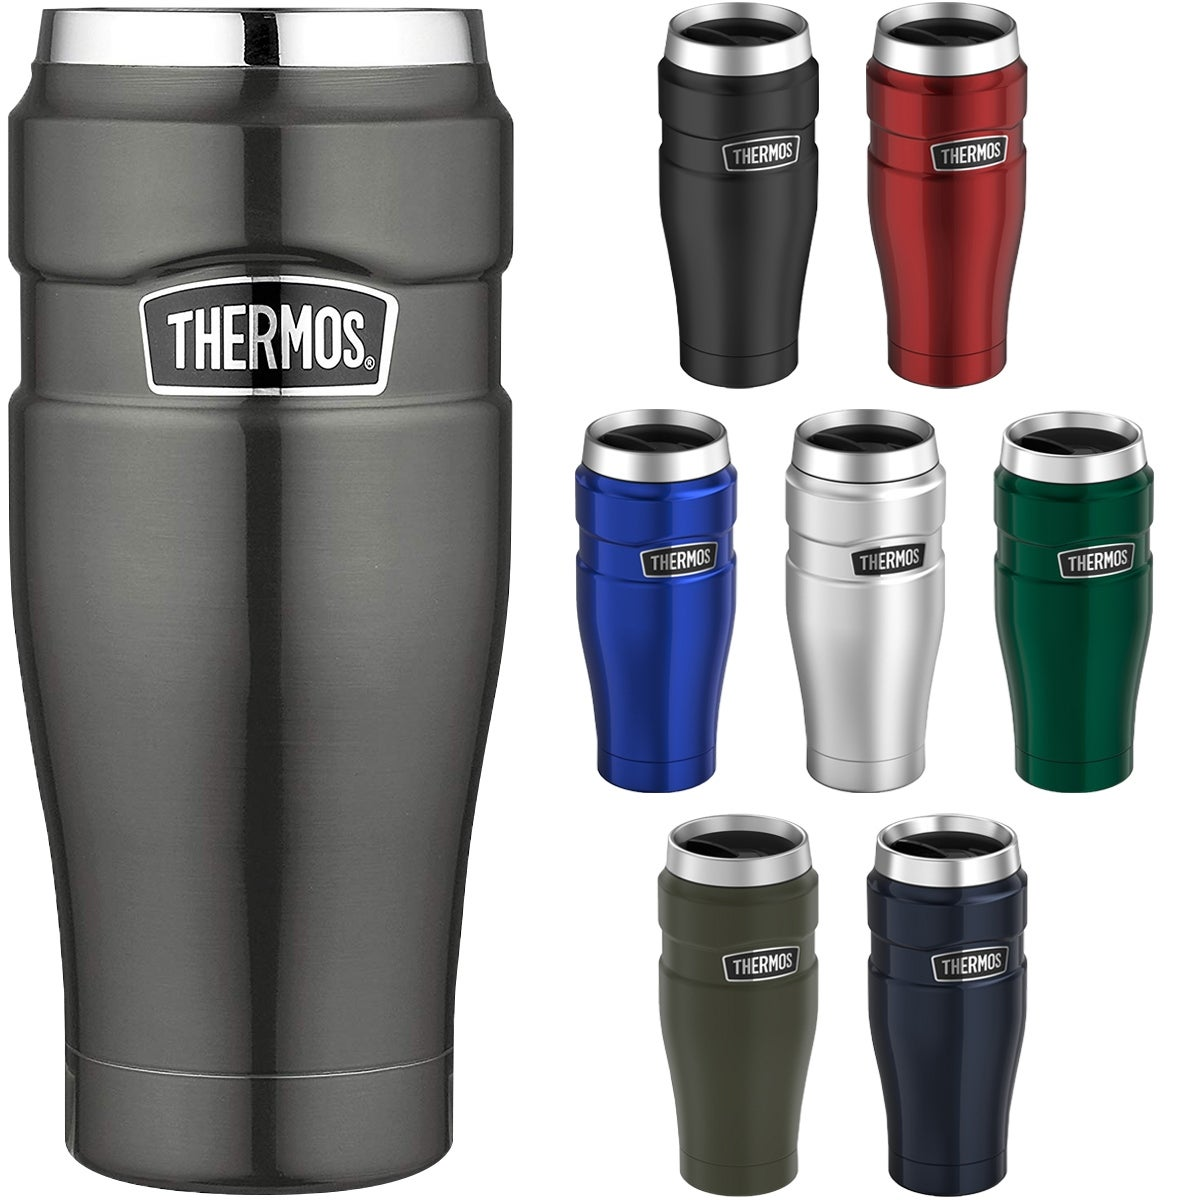 Thermos 16 oz  Stainless King Vacuum Insulated Stainless Steel Travel Mug -  16 oz